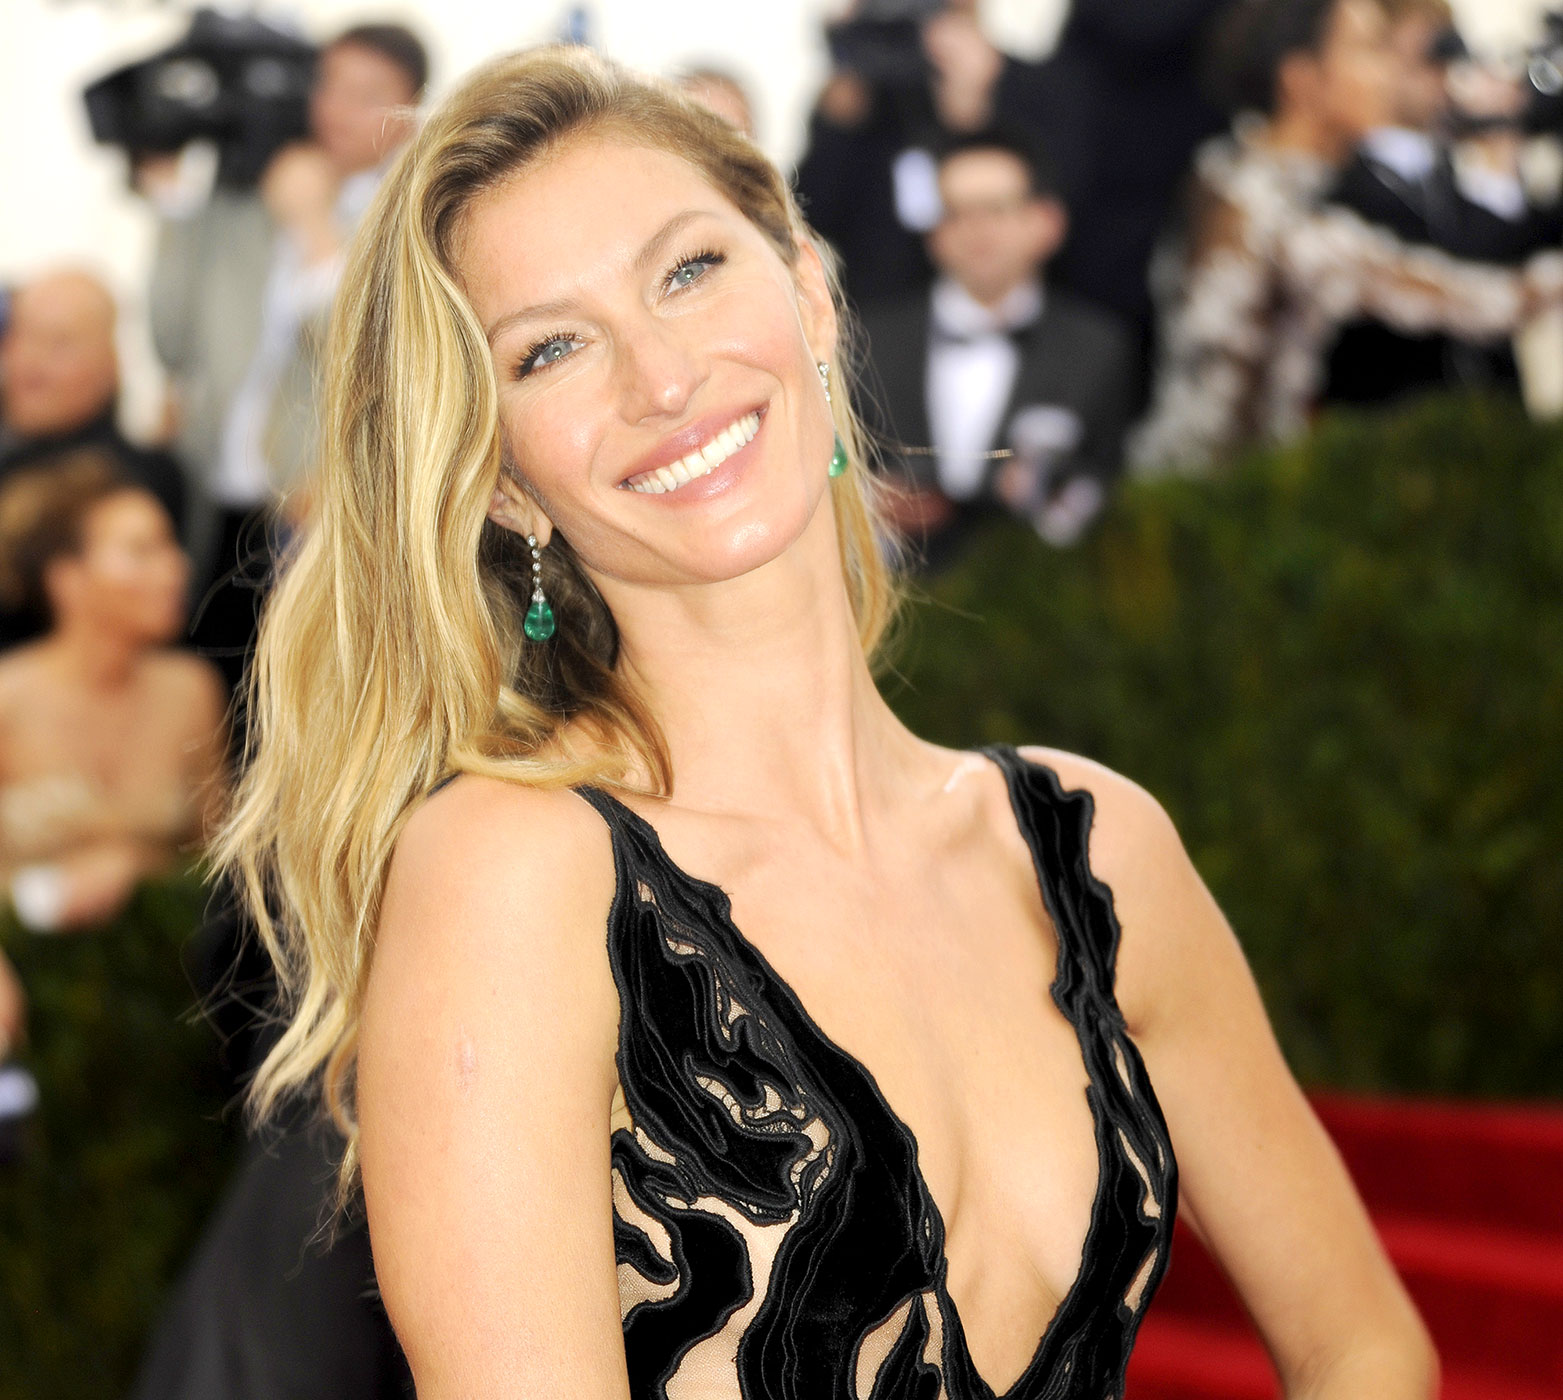 Hd Wallpaper Cars 2015 Gisele Bundchen Images Hd Full Hd Pictures